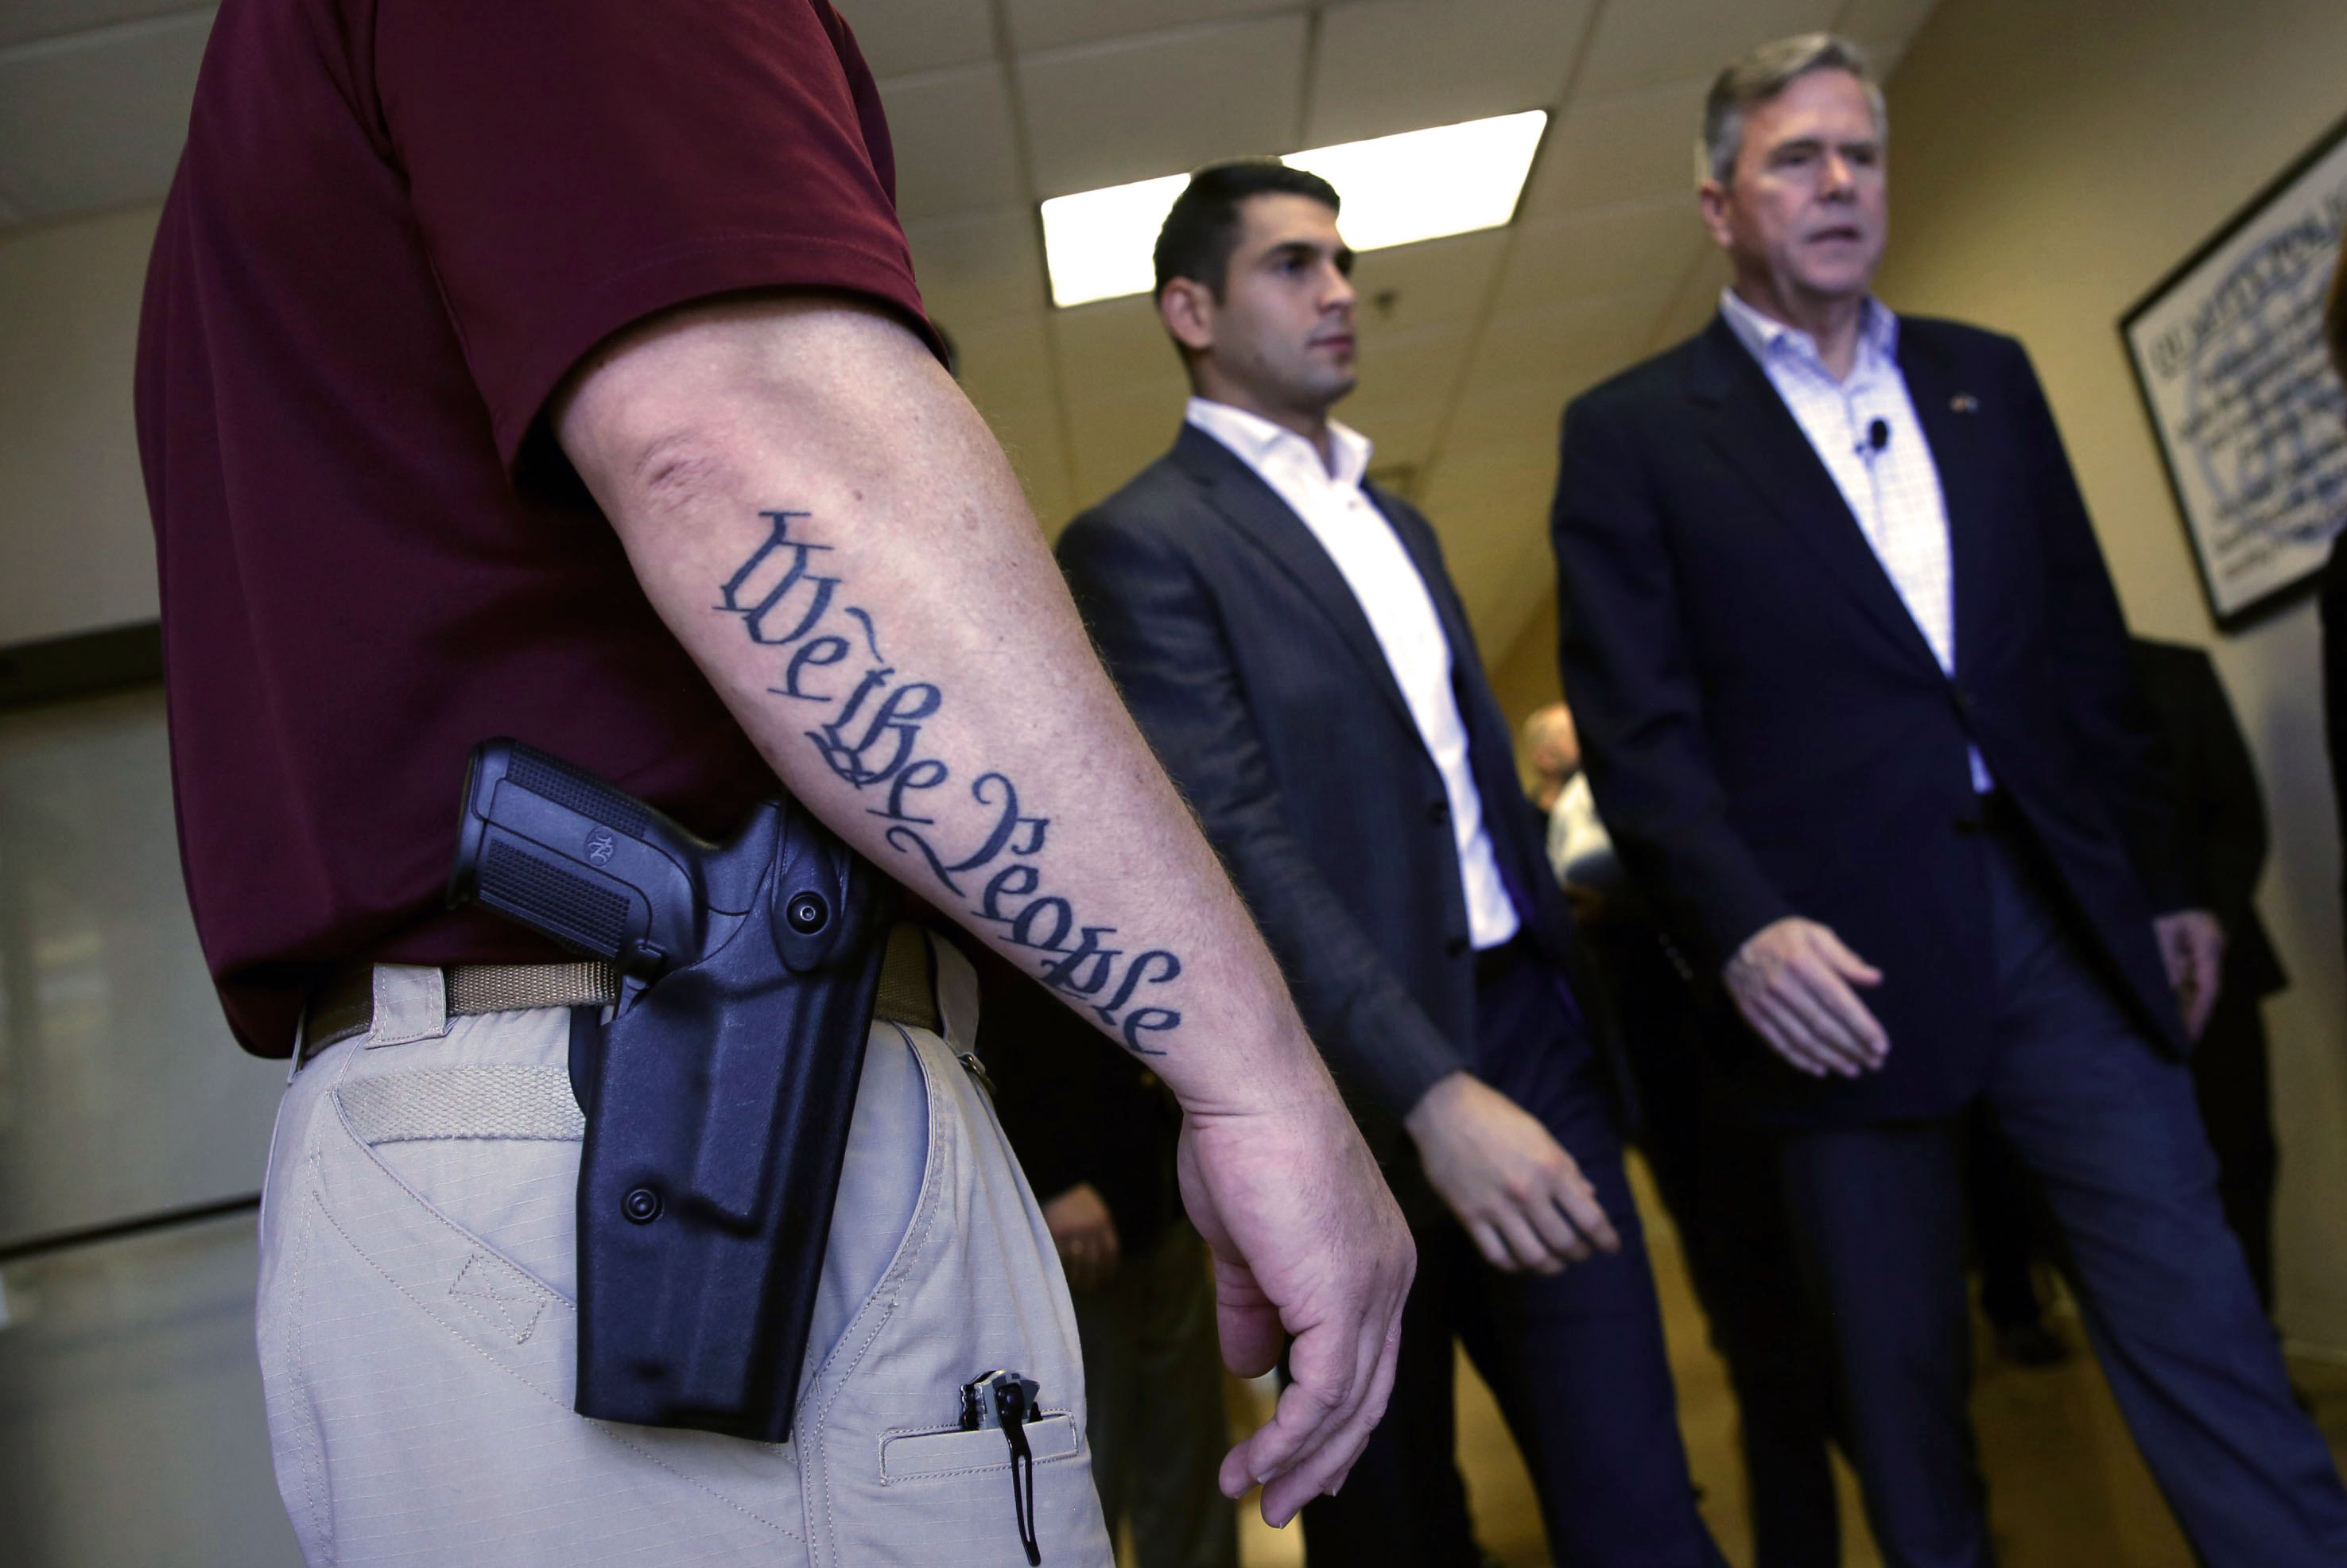 Republican presidential candidate Jeb Bush walks past a security guard after a town hall meeting with employees at FN America gun manufacturers in Columbia, S.C. on Feb. 16, 2016.